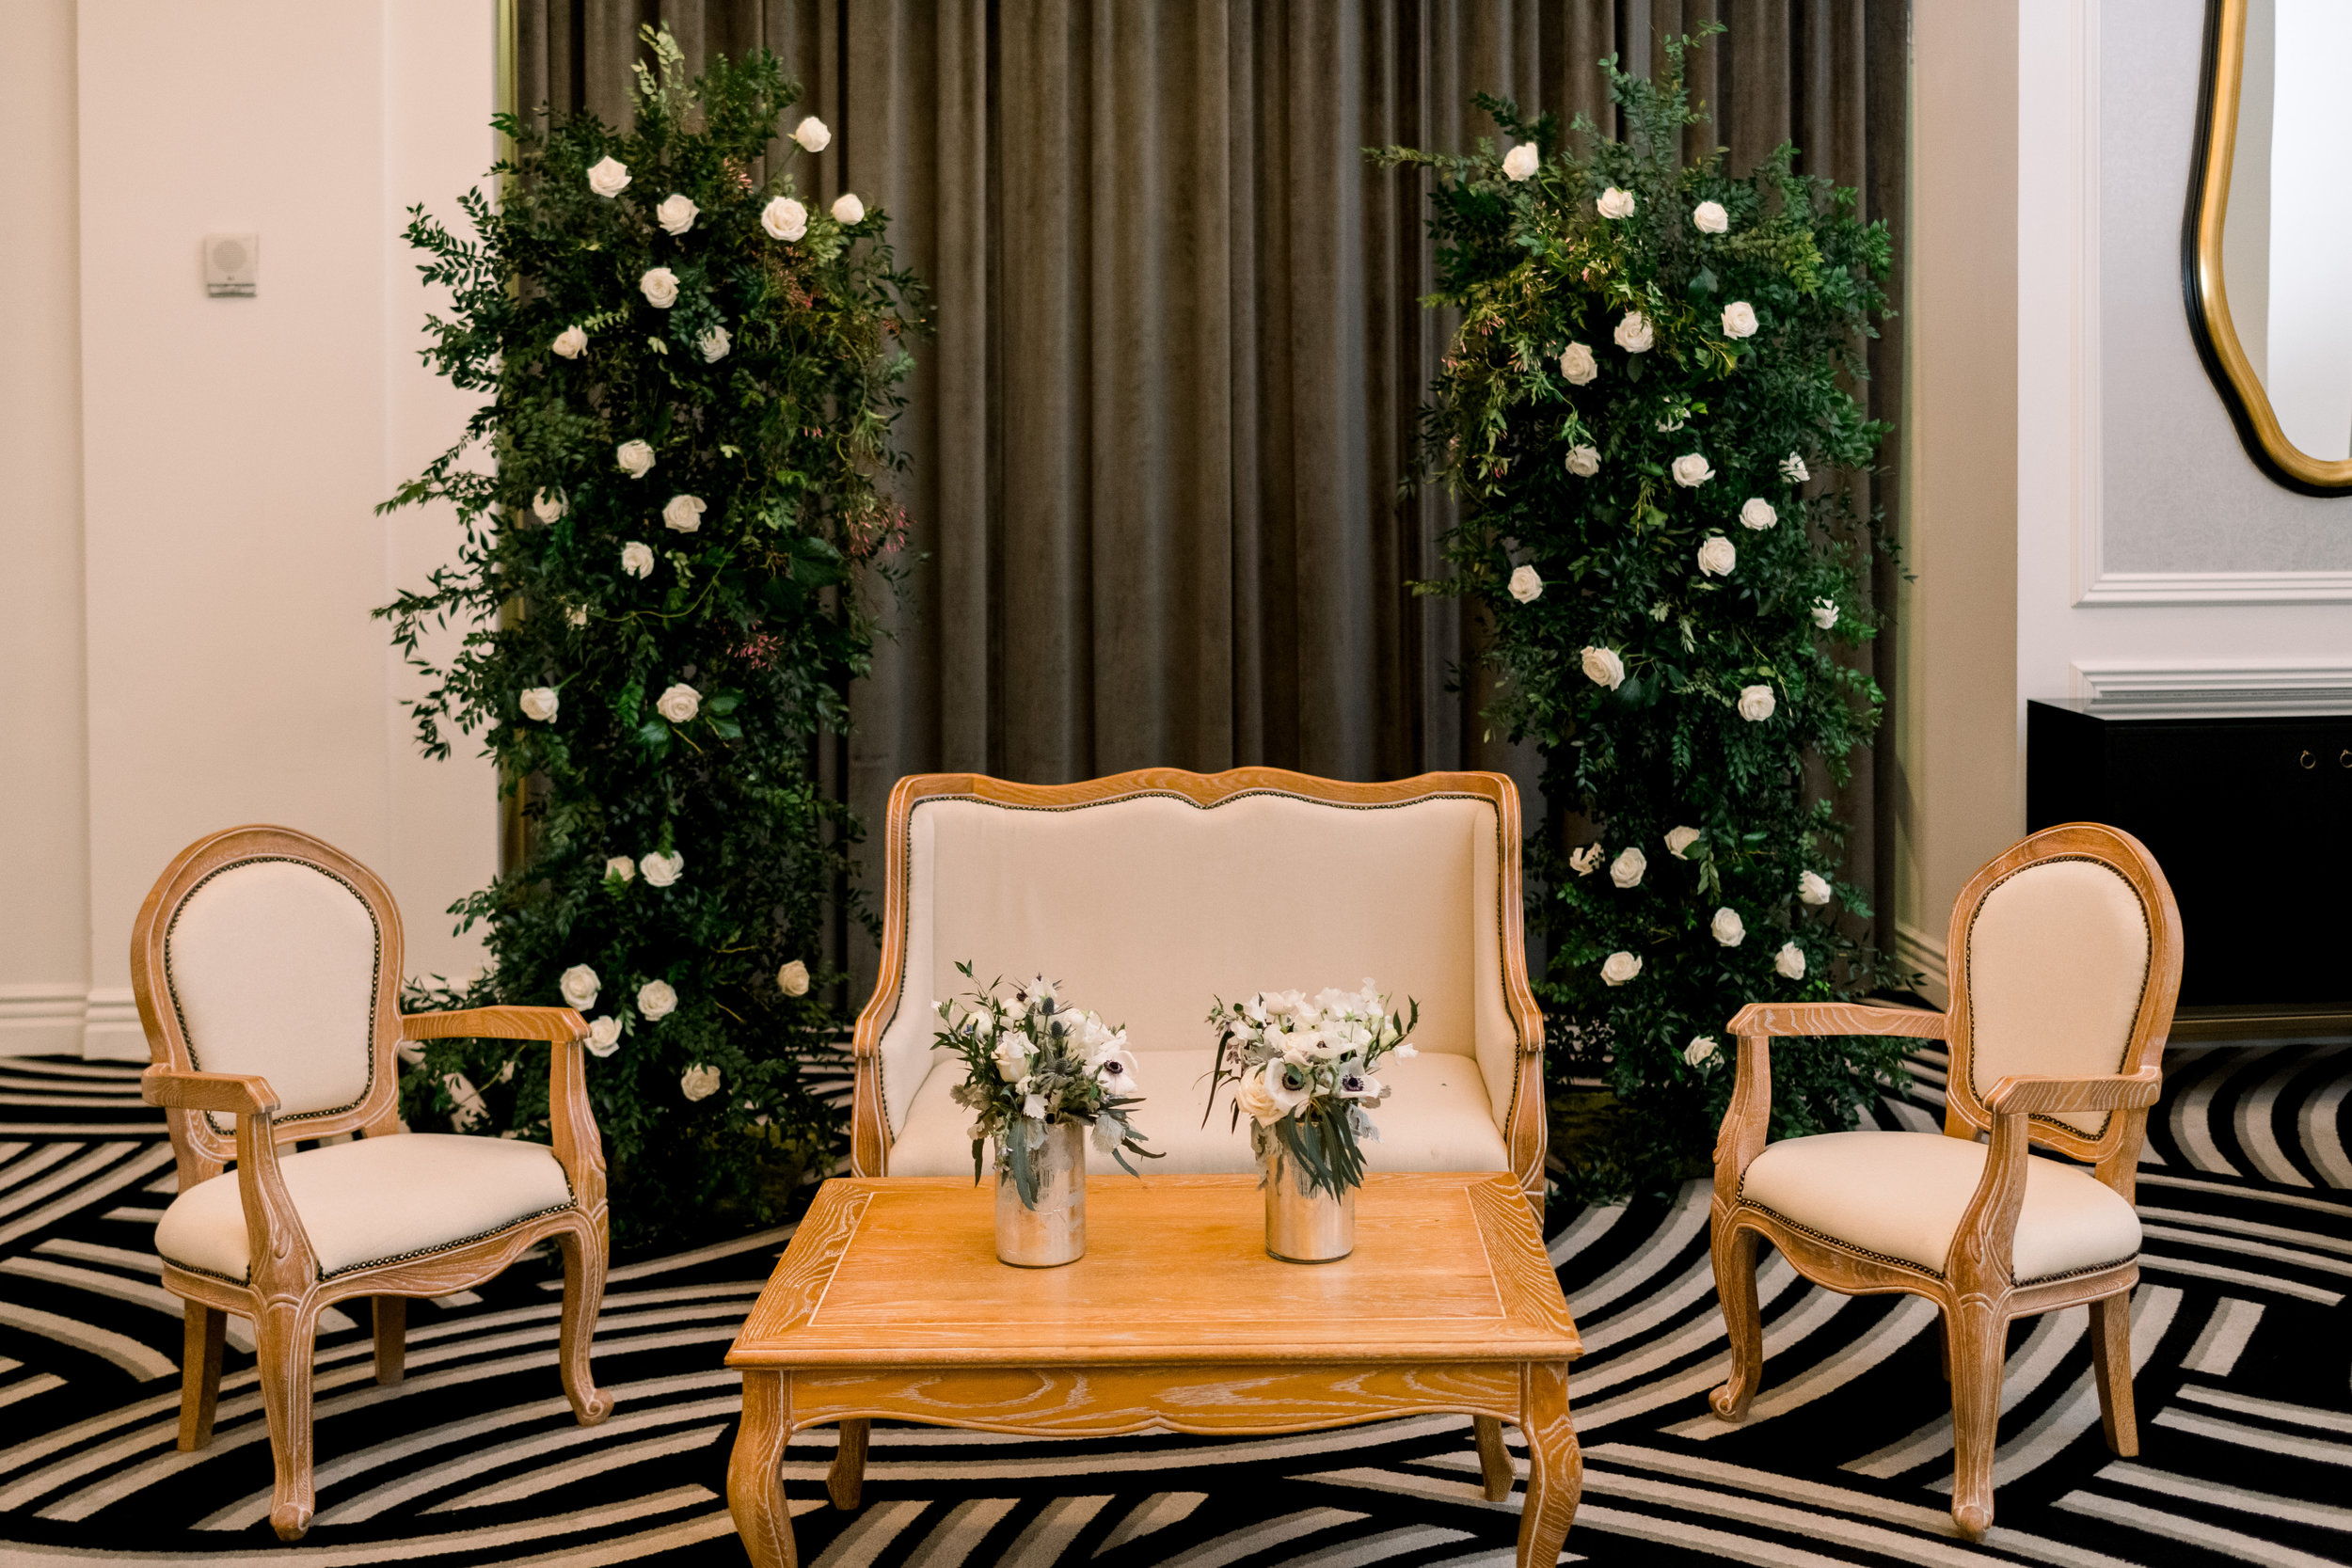 Wedding reception decor for Pittsburgh wedding at Hotel Monaco planned by Exhale Events. Find more modern wedding ideas at exhale-events.com!